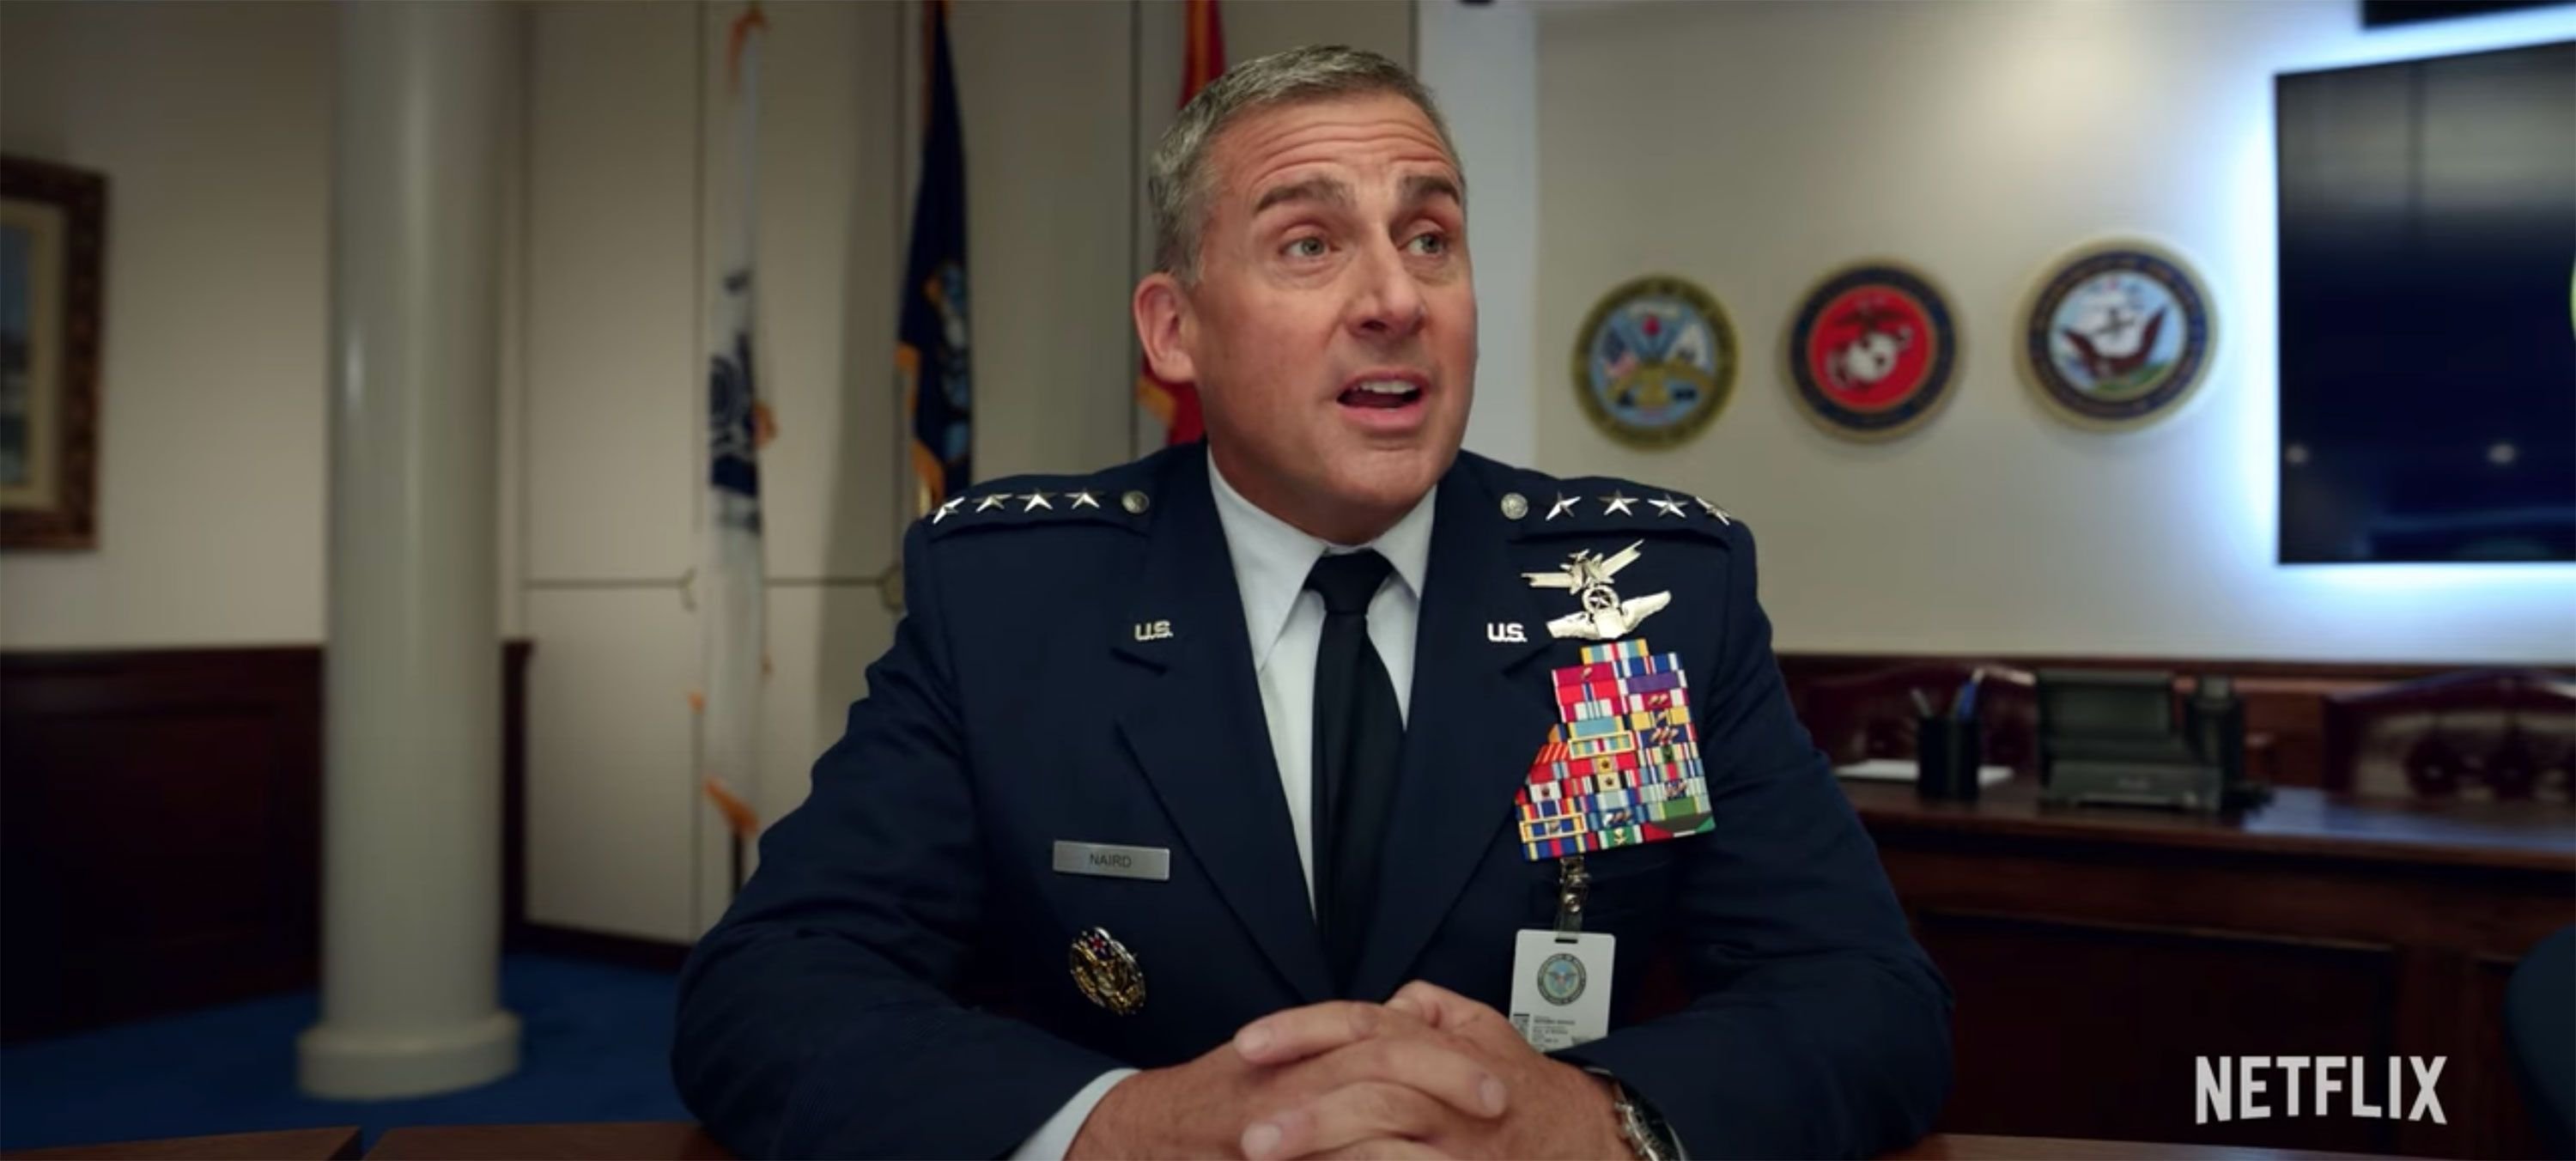 Netflix 'Space Force' Trailer 2020 With Steve Carell [WATCH]